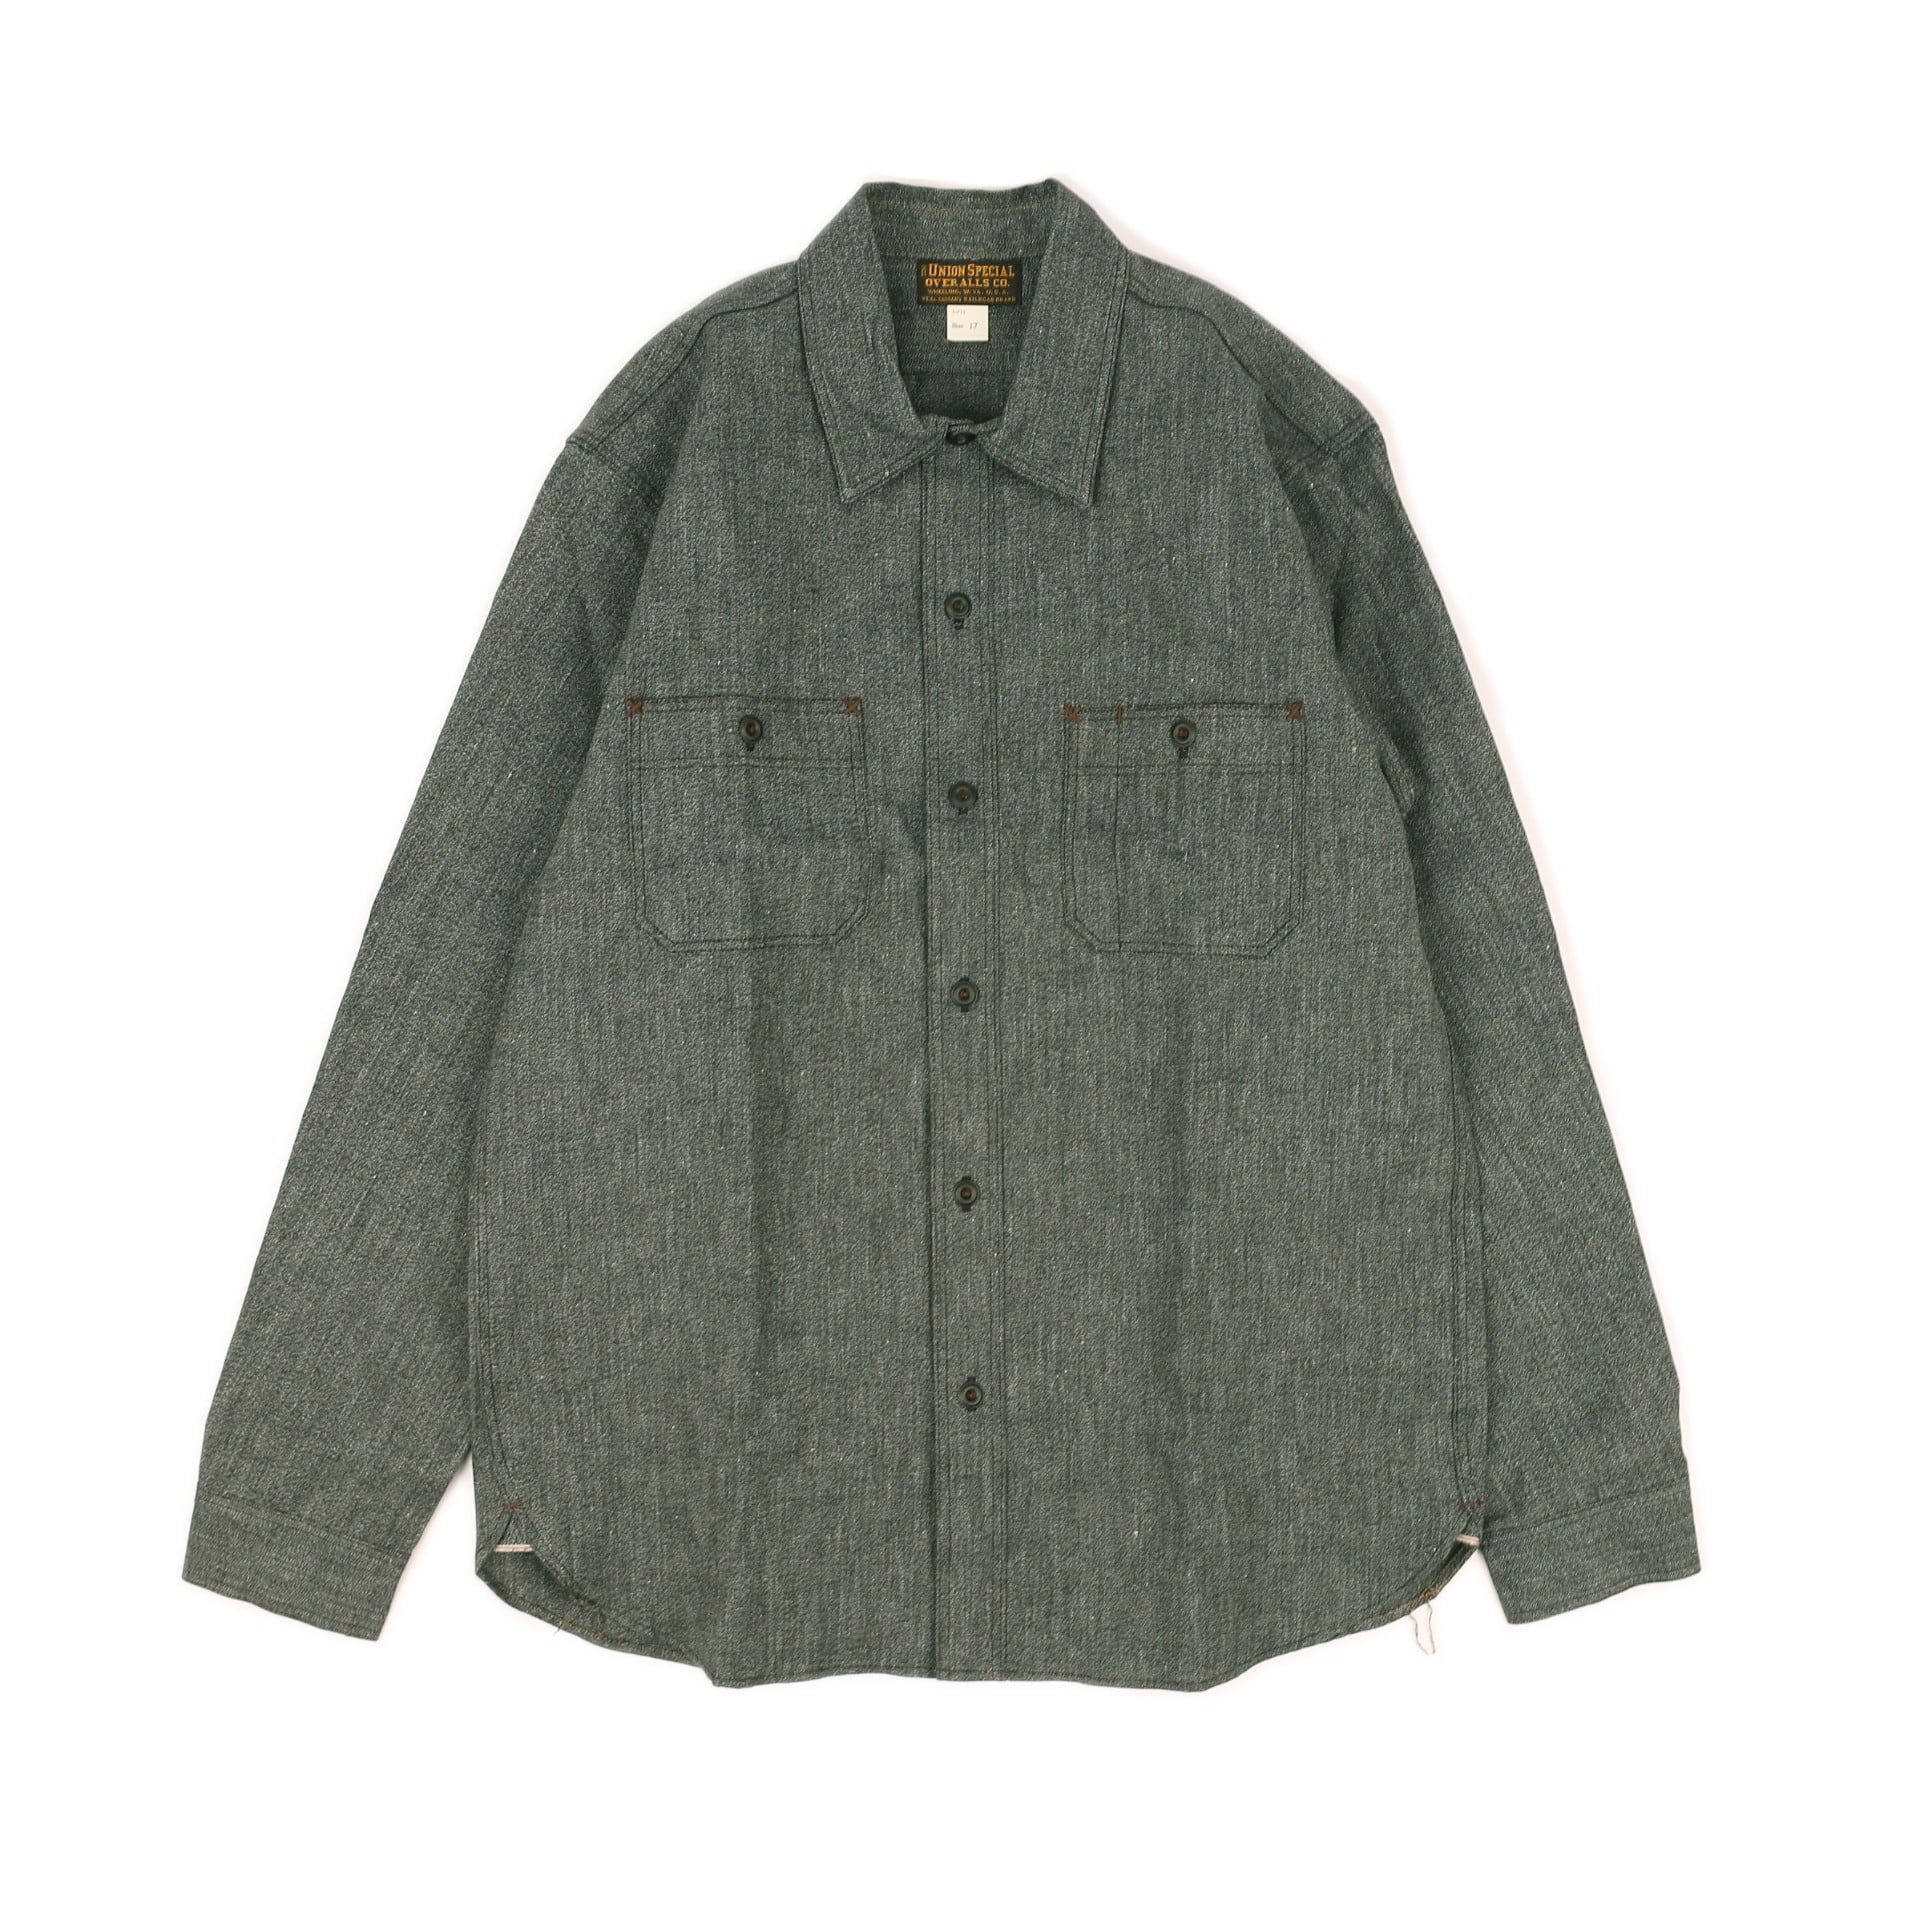 "[Union Special Ovealls]Work Shirt""NEAL""(Black Pepper)"